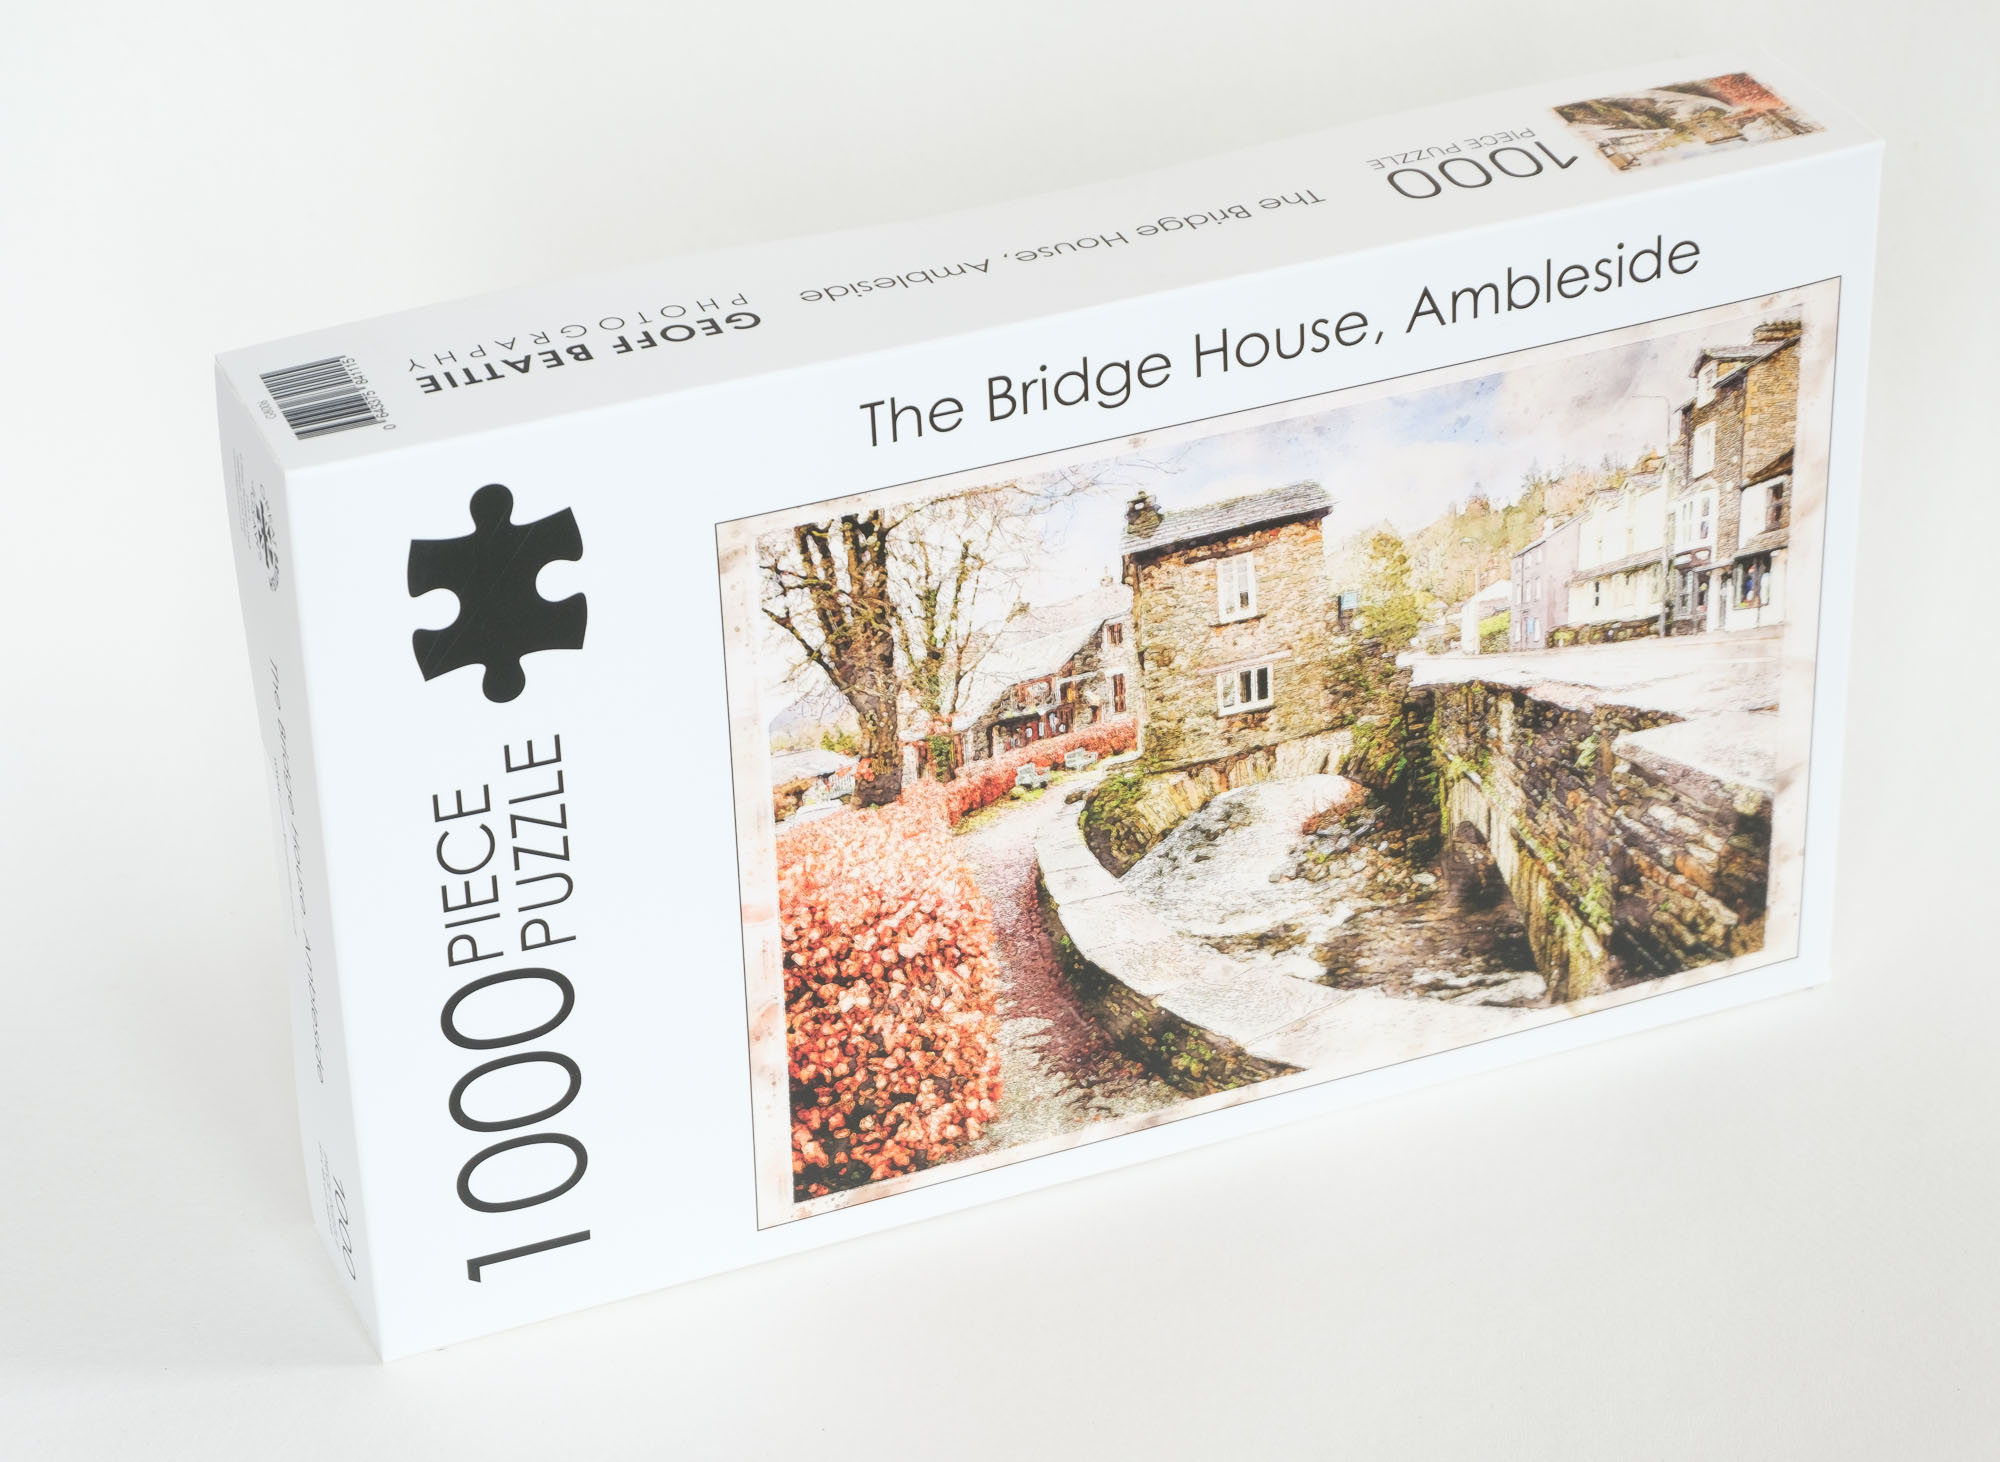 Ambleside the bridge house jigsaw Lake district Cumbria